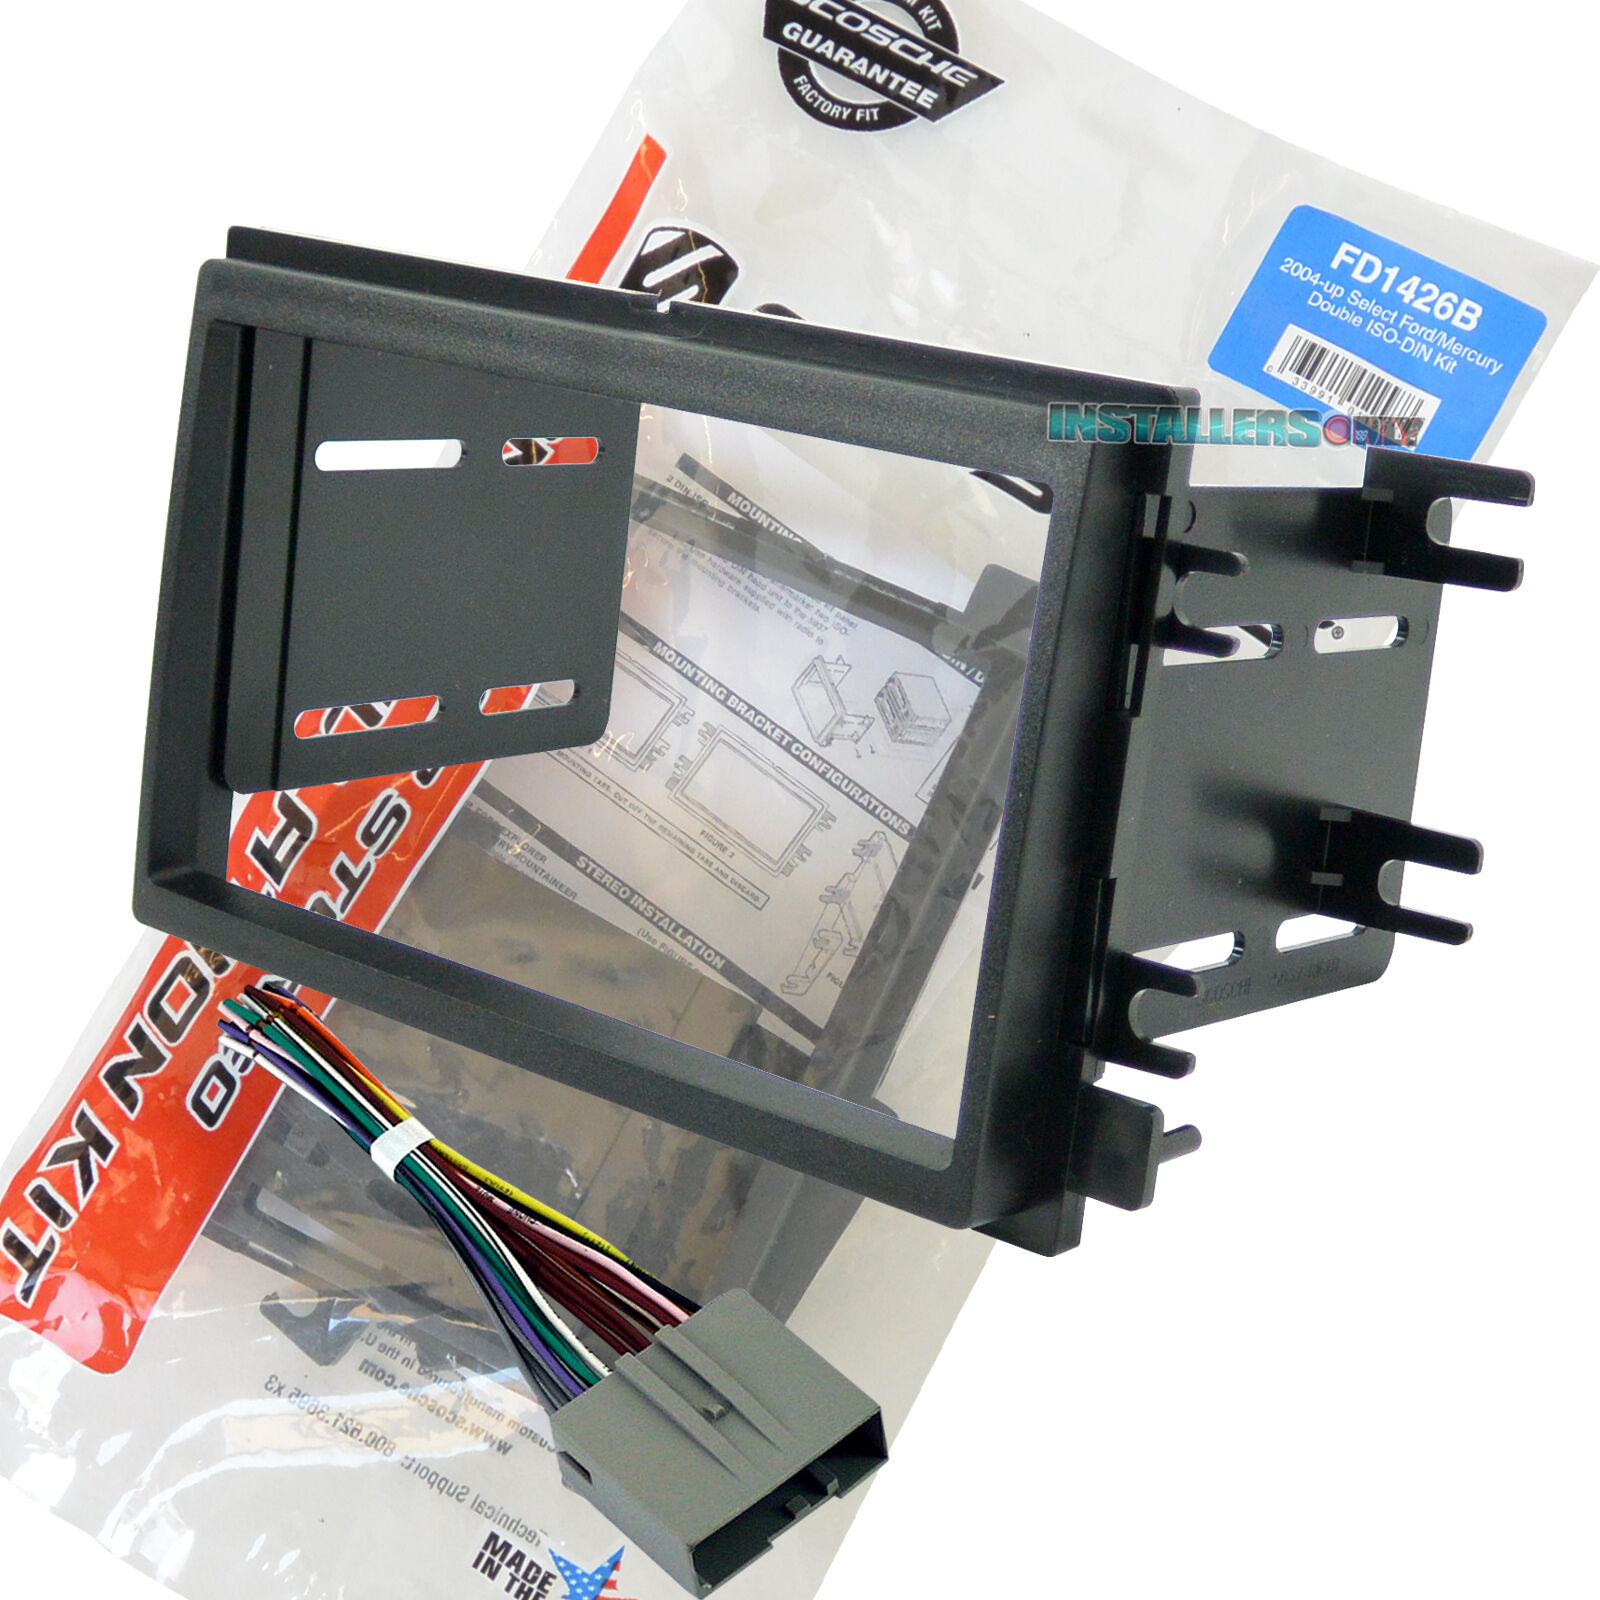 Scosche Fd1426b Double Din Radio Install Dash Kit Wires Car Wiring Installation 1 Of 6free Shipping